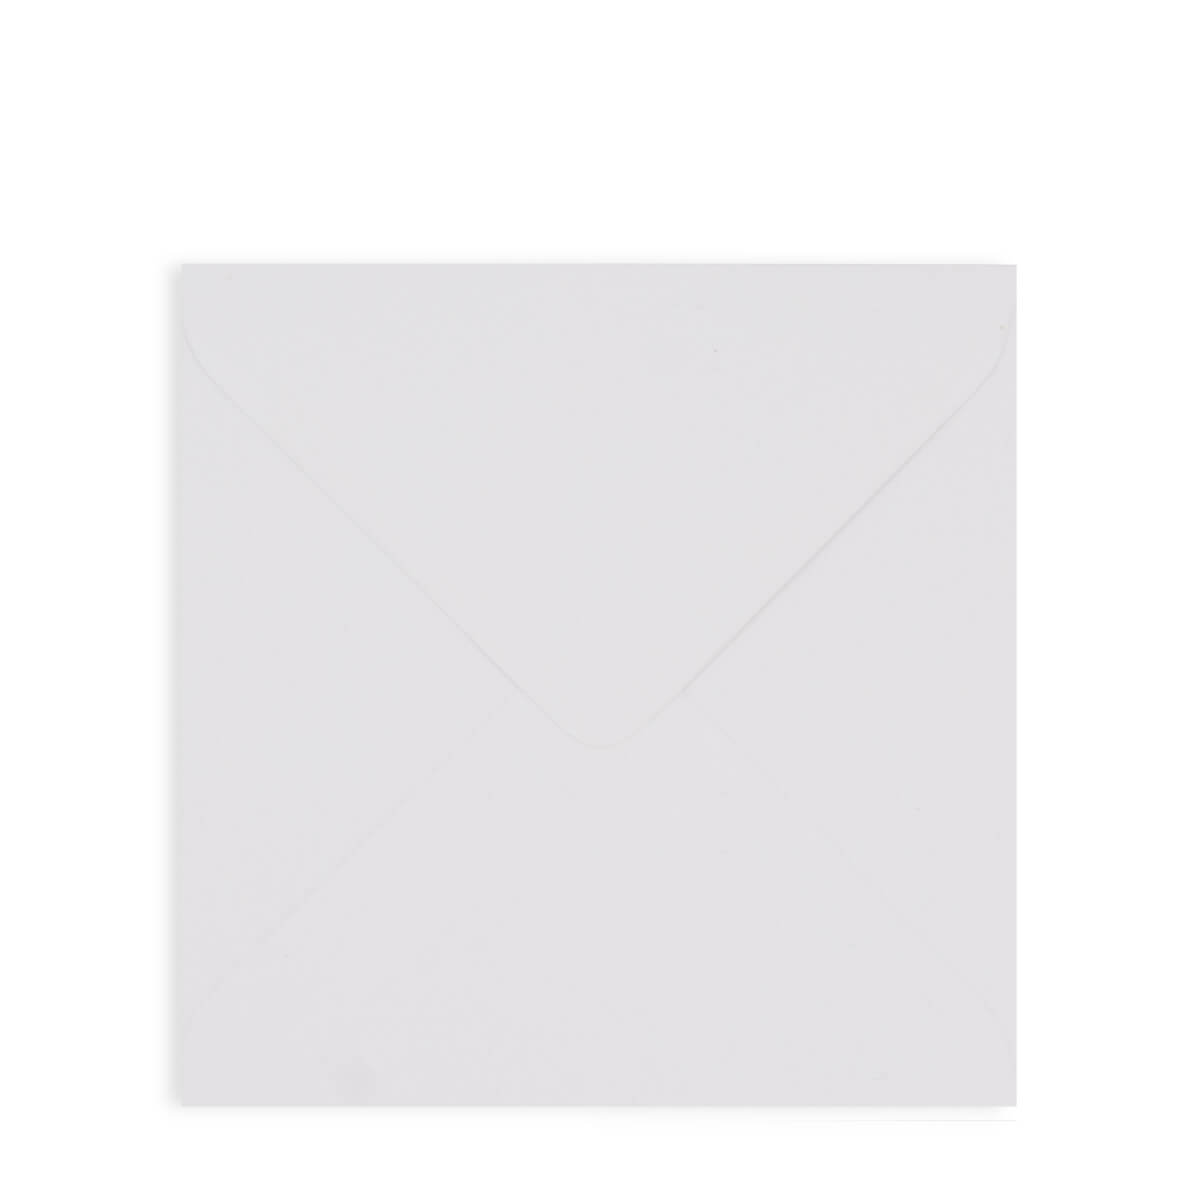 WHITE 155mm SQUARE ENVELOPE 130GSM